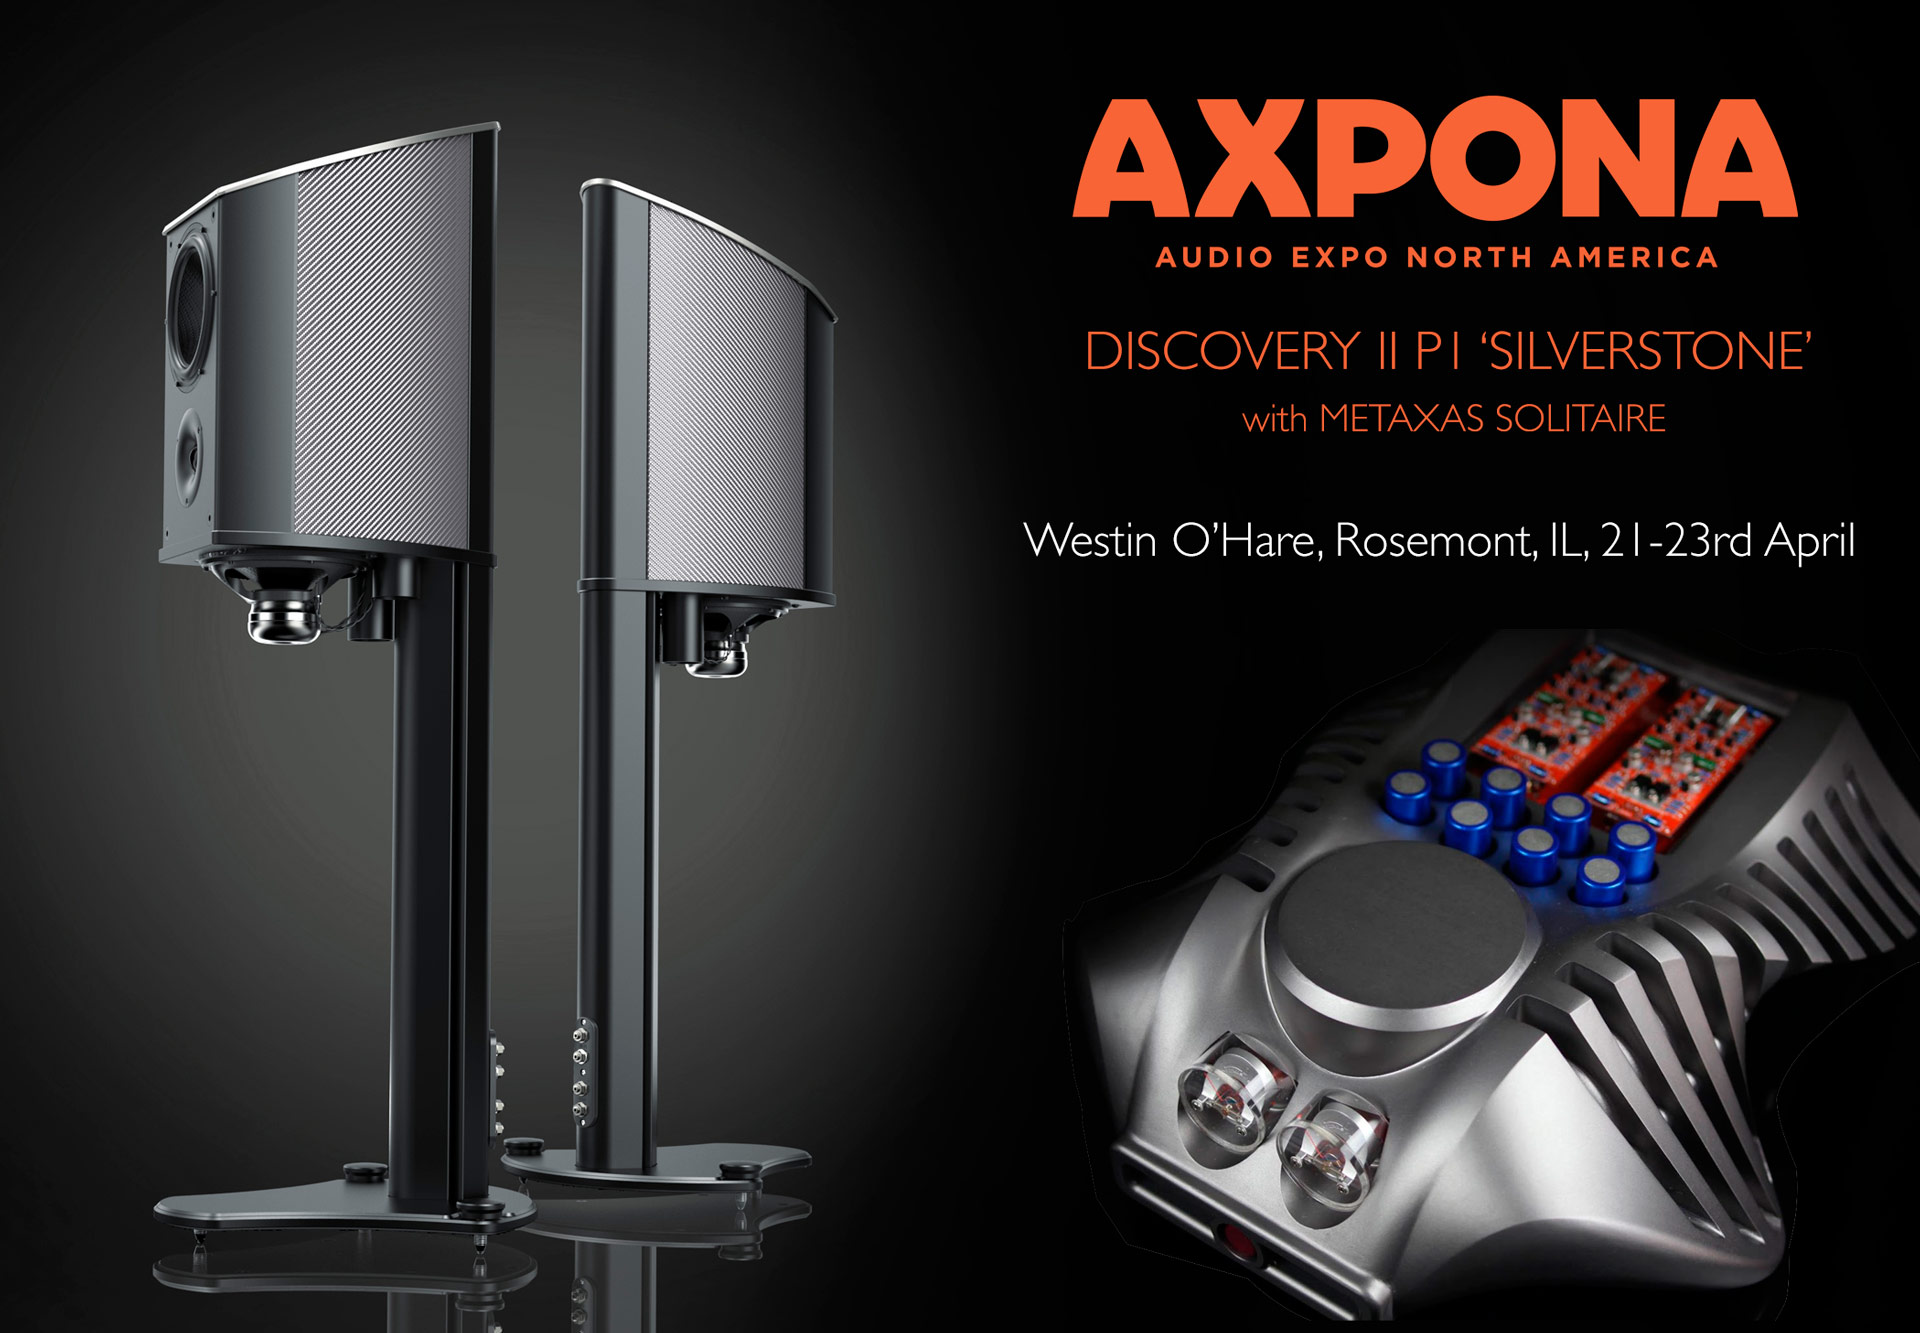 Geometry Series poster showing the Carbon Fibre Discovery II Loudspeaker with Metaxas Solitaire for the AXPONA Chicago USA lifstyle